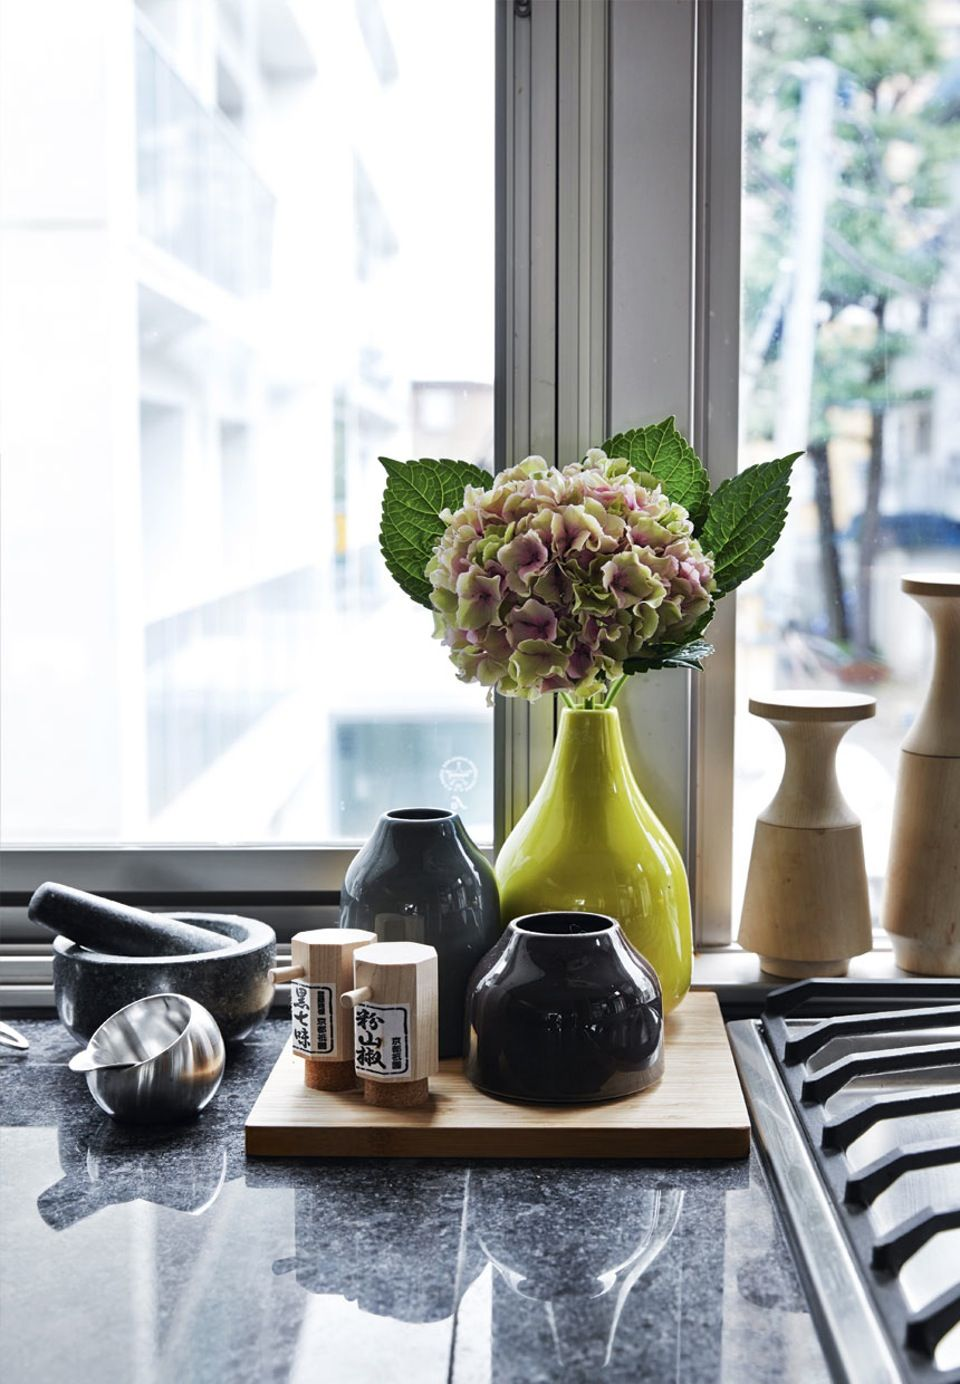 Kähler vases  | -★-  |  Nicolai Bergmann invites us into his family's townhouse in the middle of Tokyo.